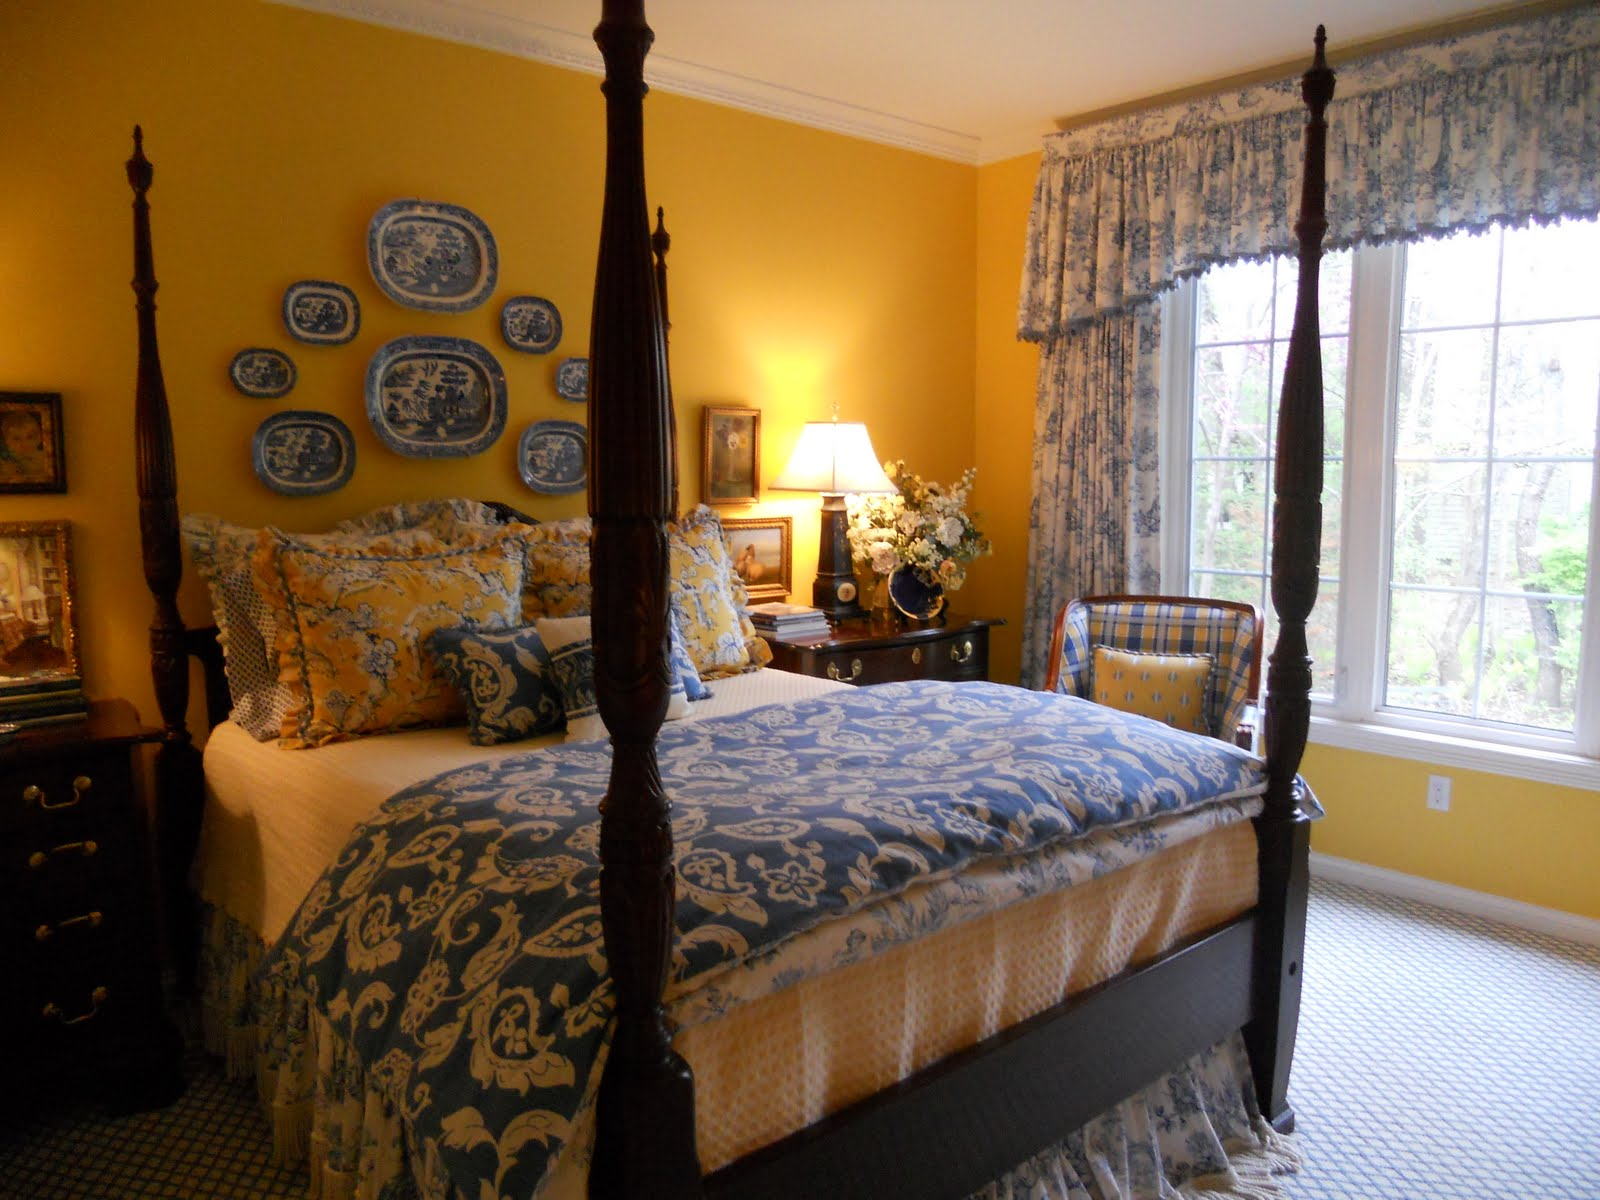 Blue Toile Bedroom Ideas: Interiors Etc. Details: Totally Toile